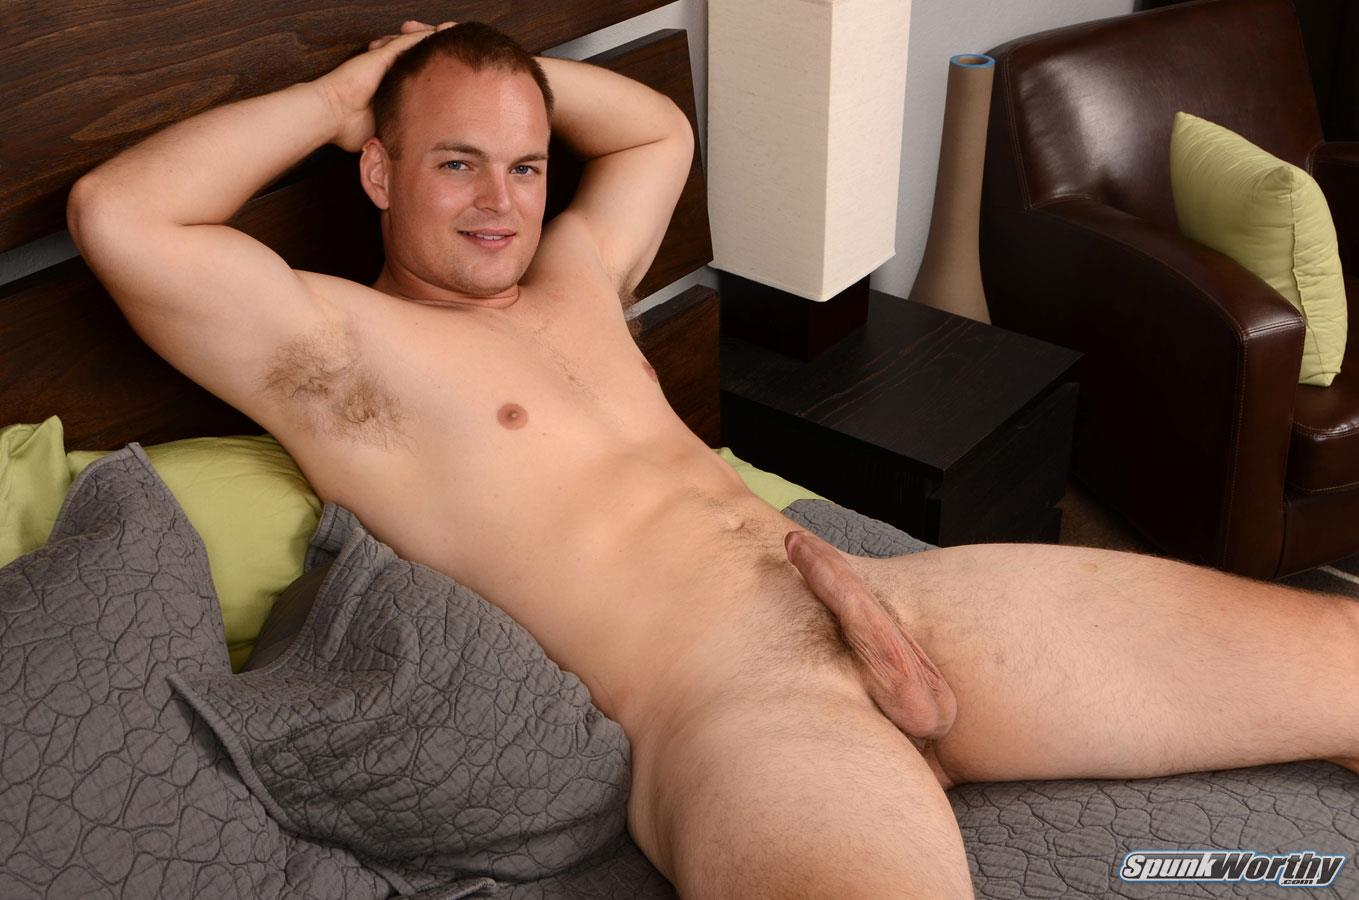 SpunkWorthy Cole Beefy Young Marine Jerking Off His Big Cock Masturbation Amateur Gay Porn 07